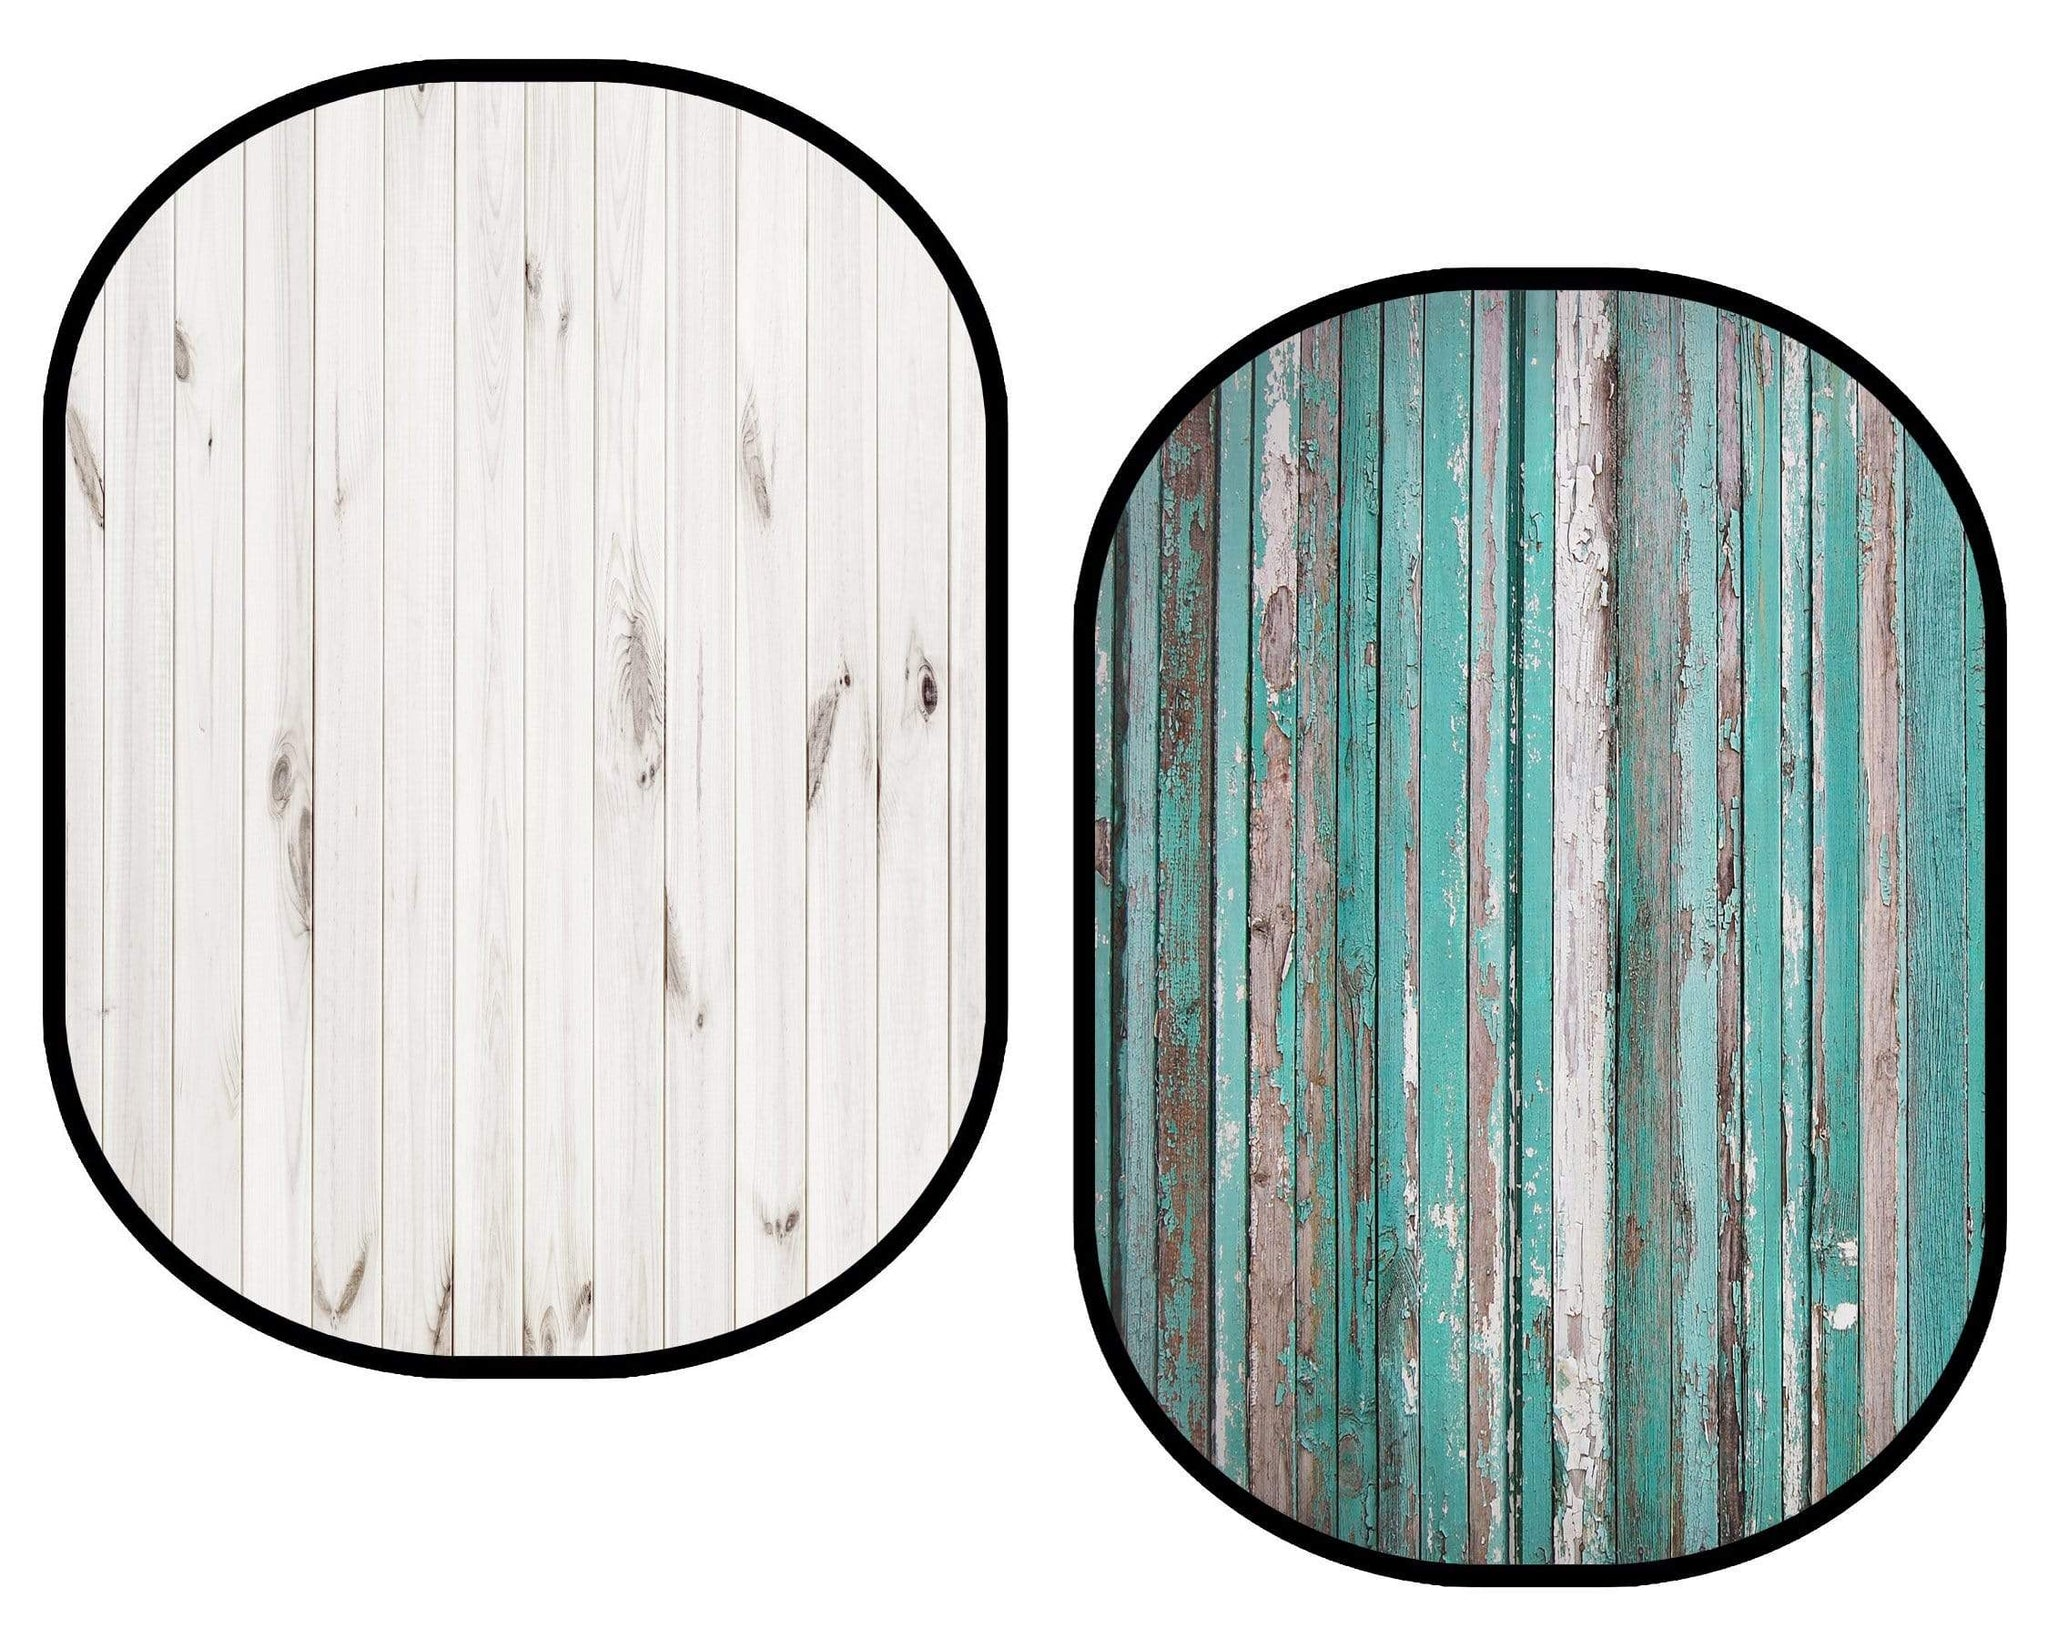 Load image into Gallery viewer, Katebackdrop£ºKate White Wood / Dark Blue Green Retro Wood Collapsible Backdrop Photography 5X6.5ft(1.5x2m)